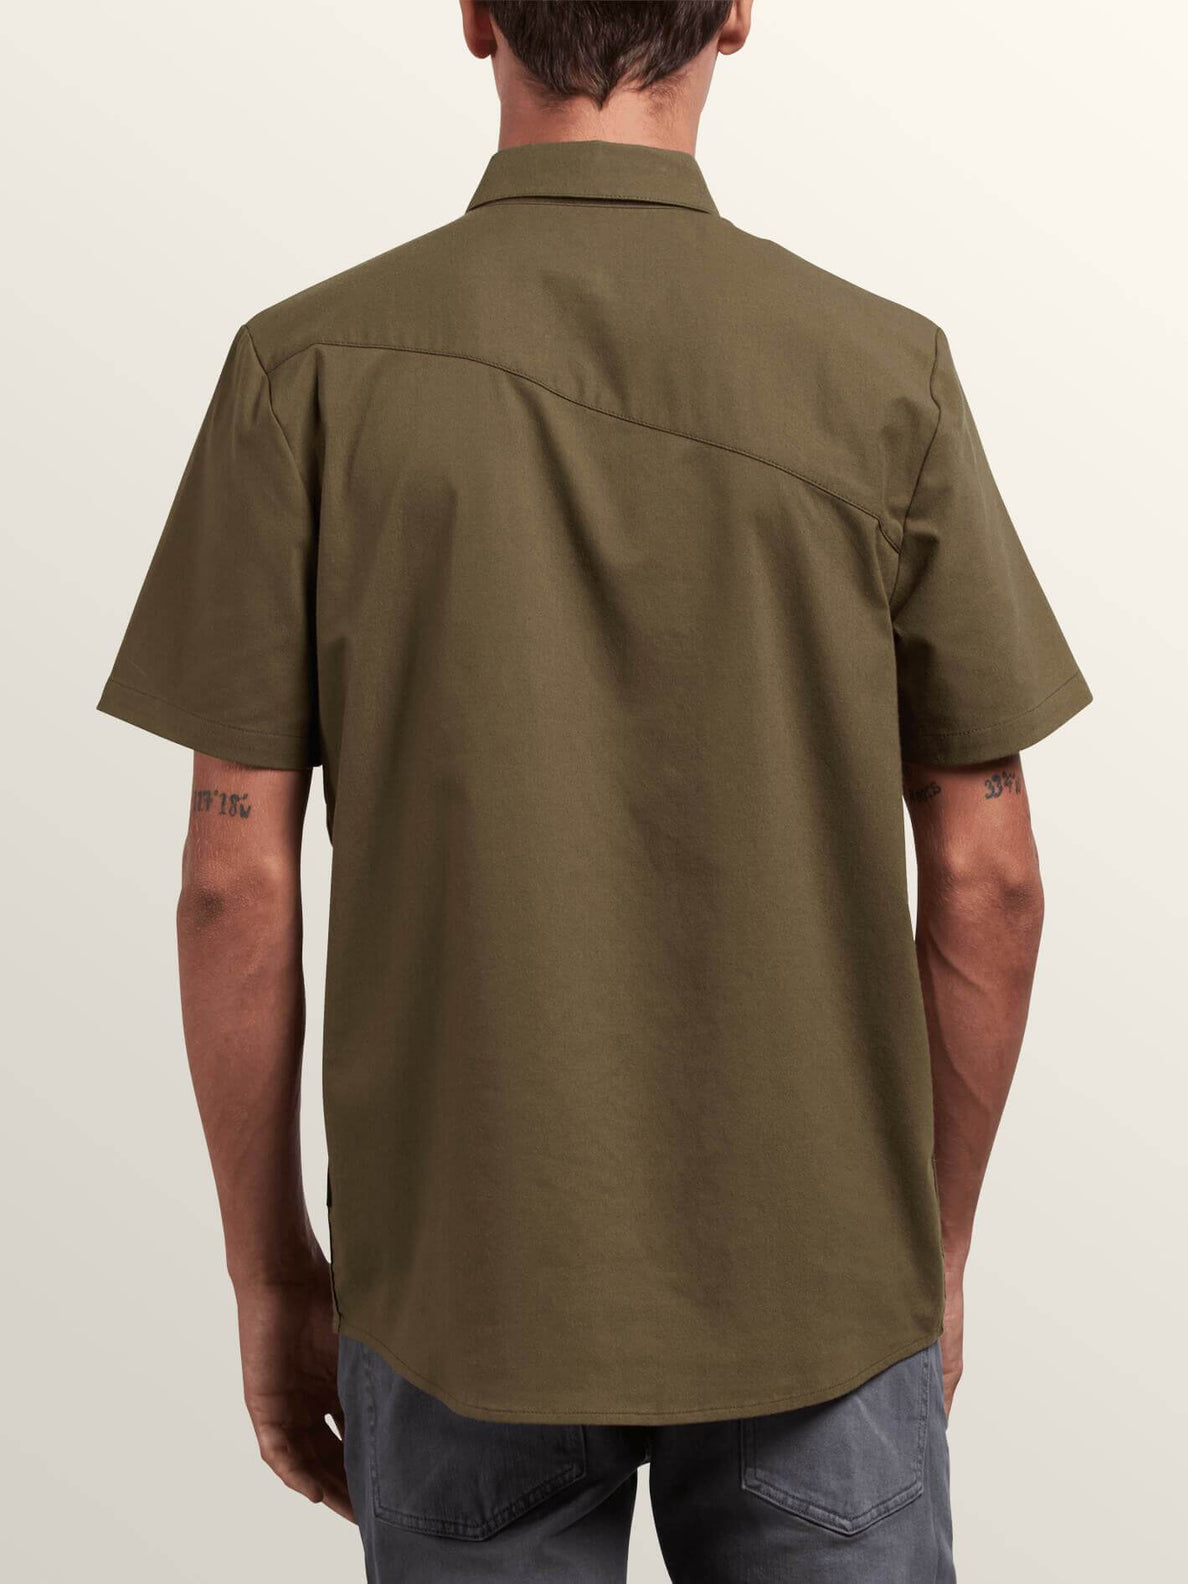 Everett Oxford Short Sleeve Shirt In Snow Military, Back View